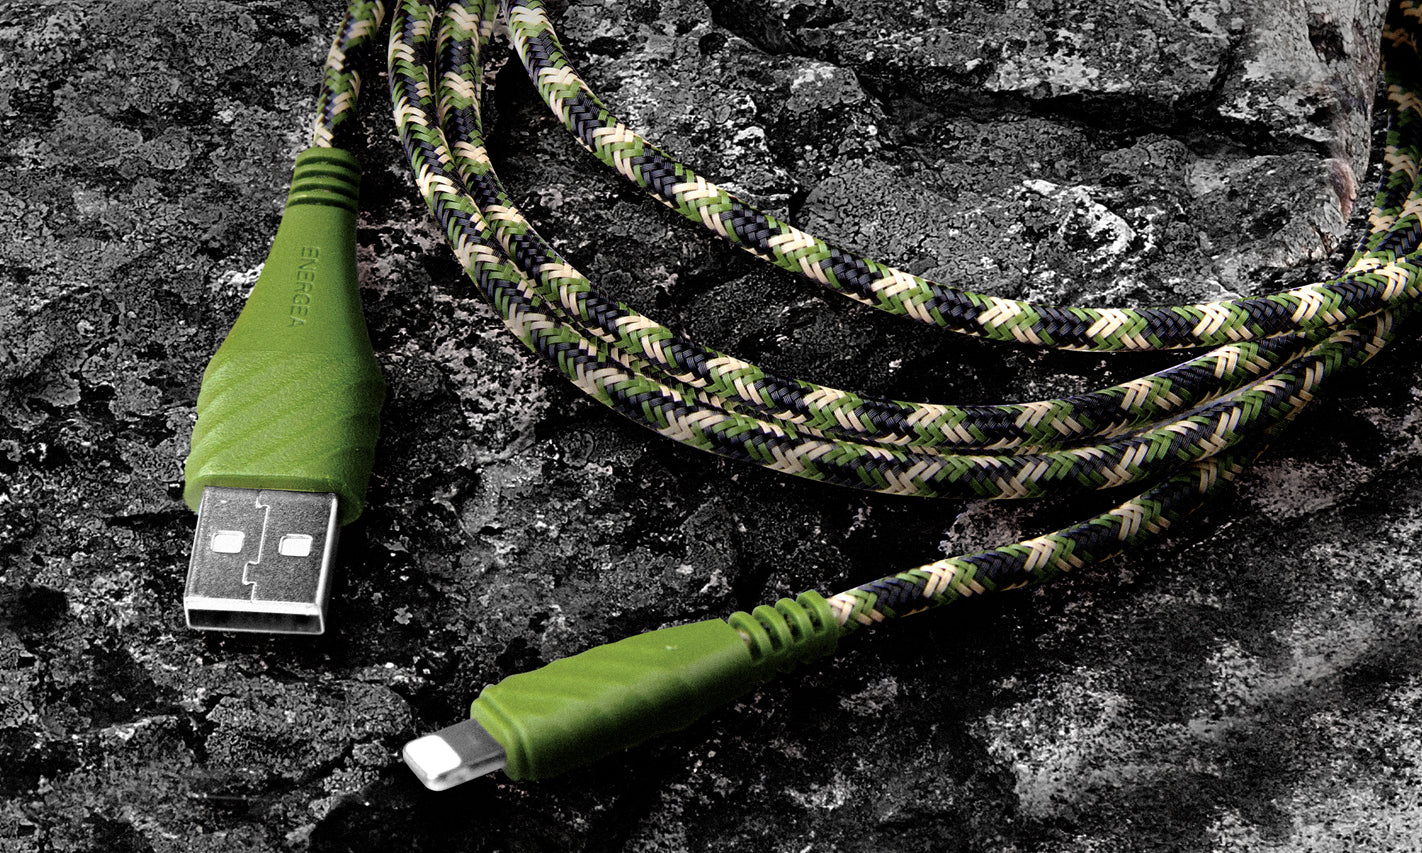 The Ultimate in Tough Cables